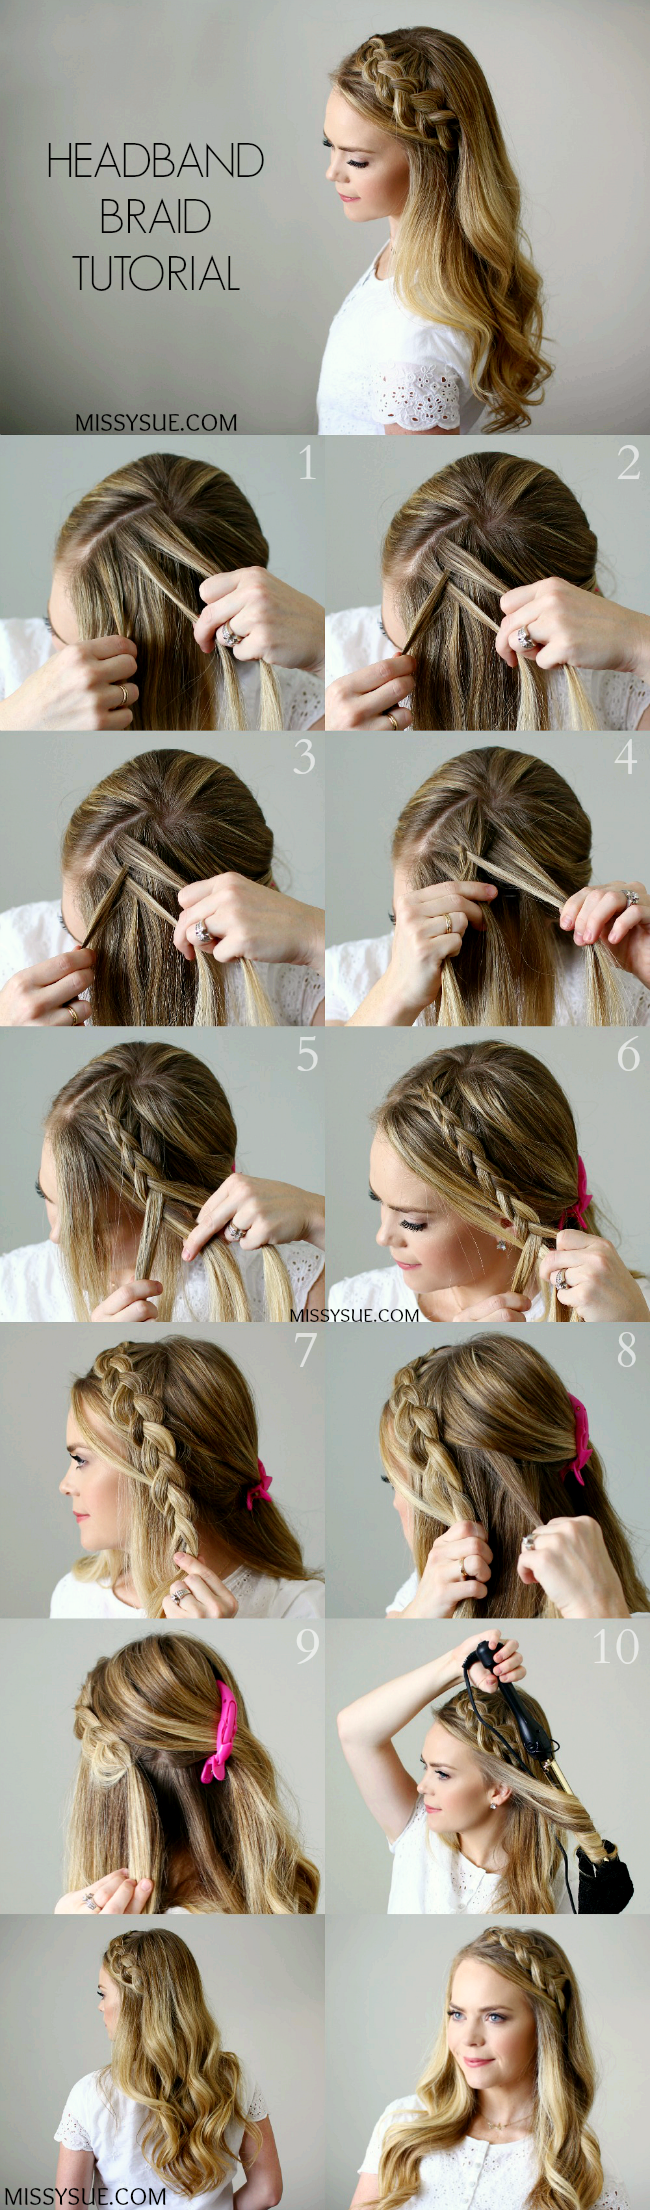 Dutchheadbandbraidtutorial Womens World Pinterest - Braid diy pinterest